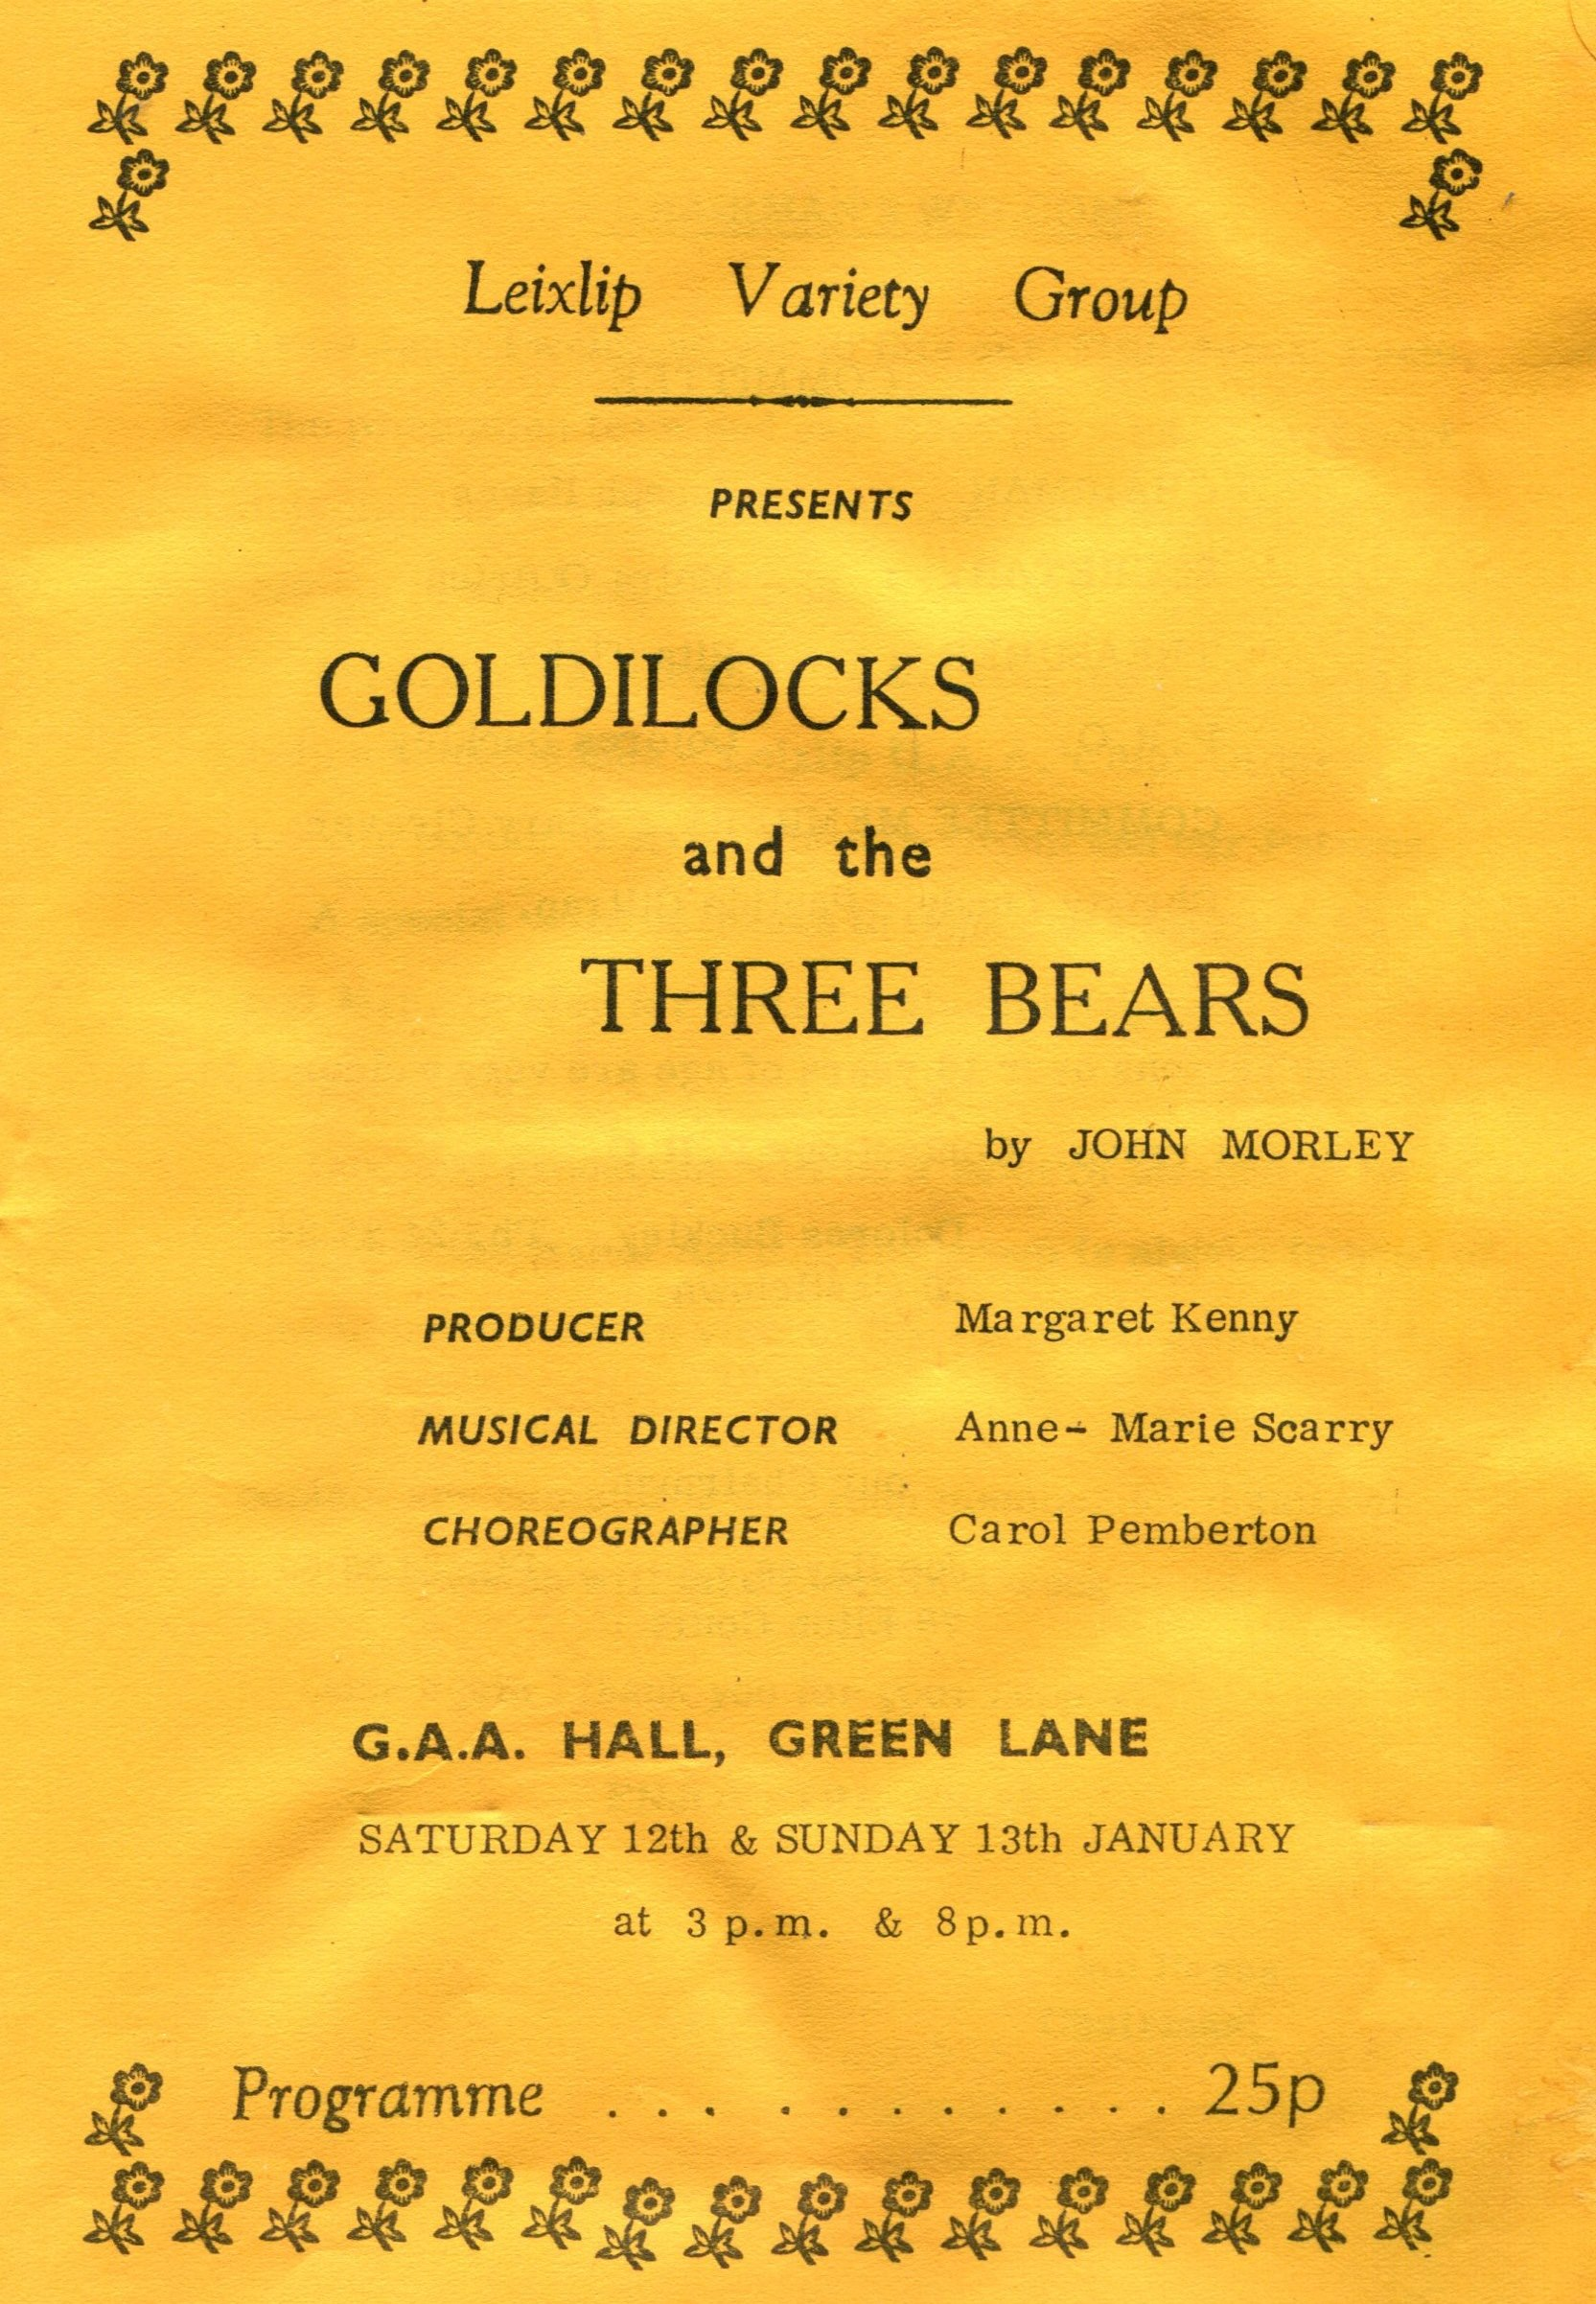 Goldilocks & the Three Bears, 1985 (www.lmvg.ie)